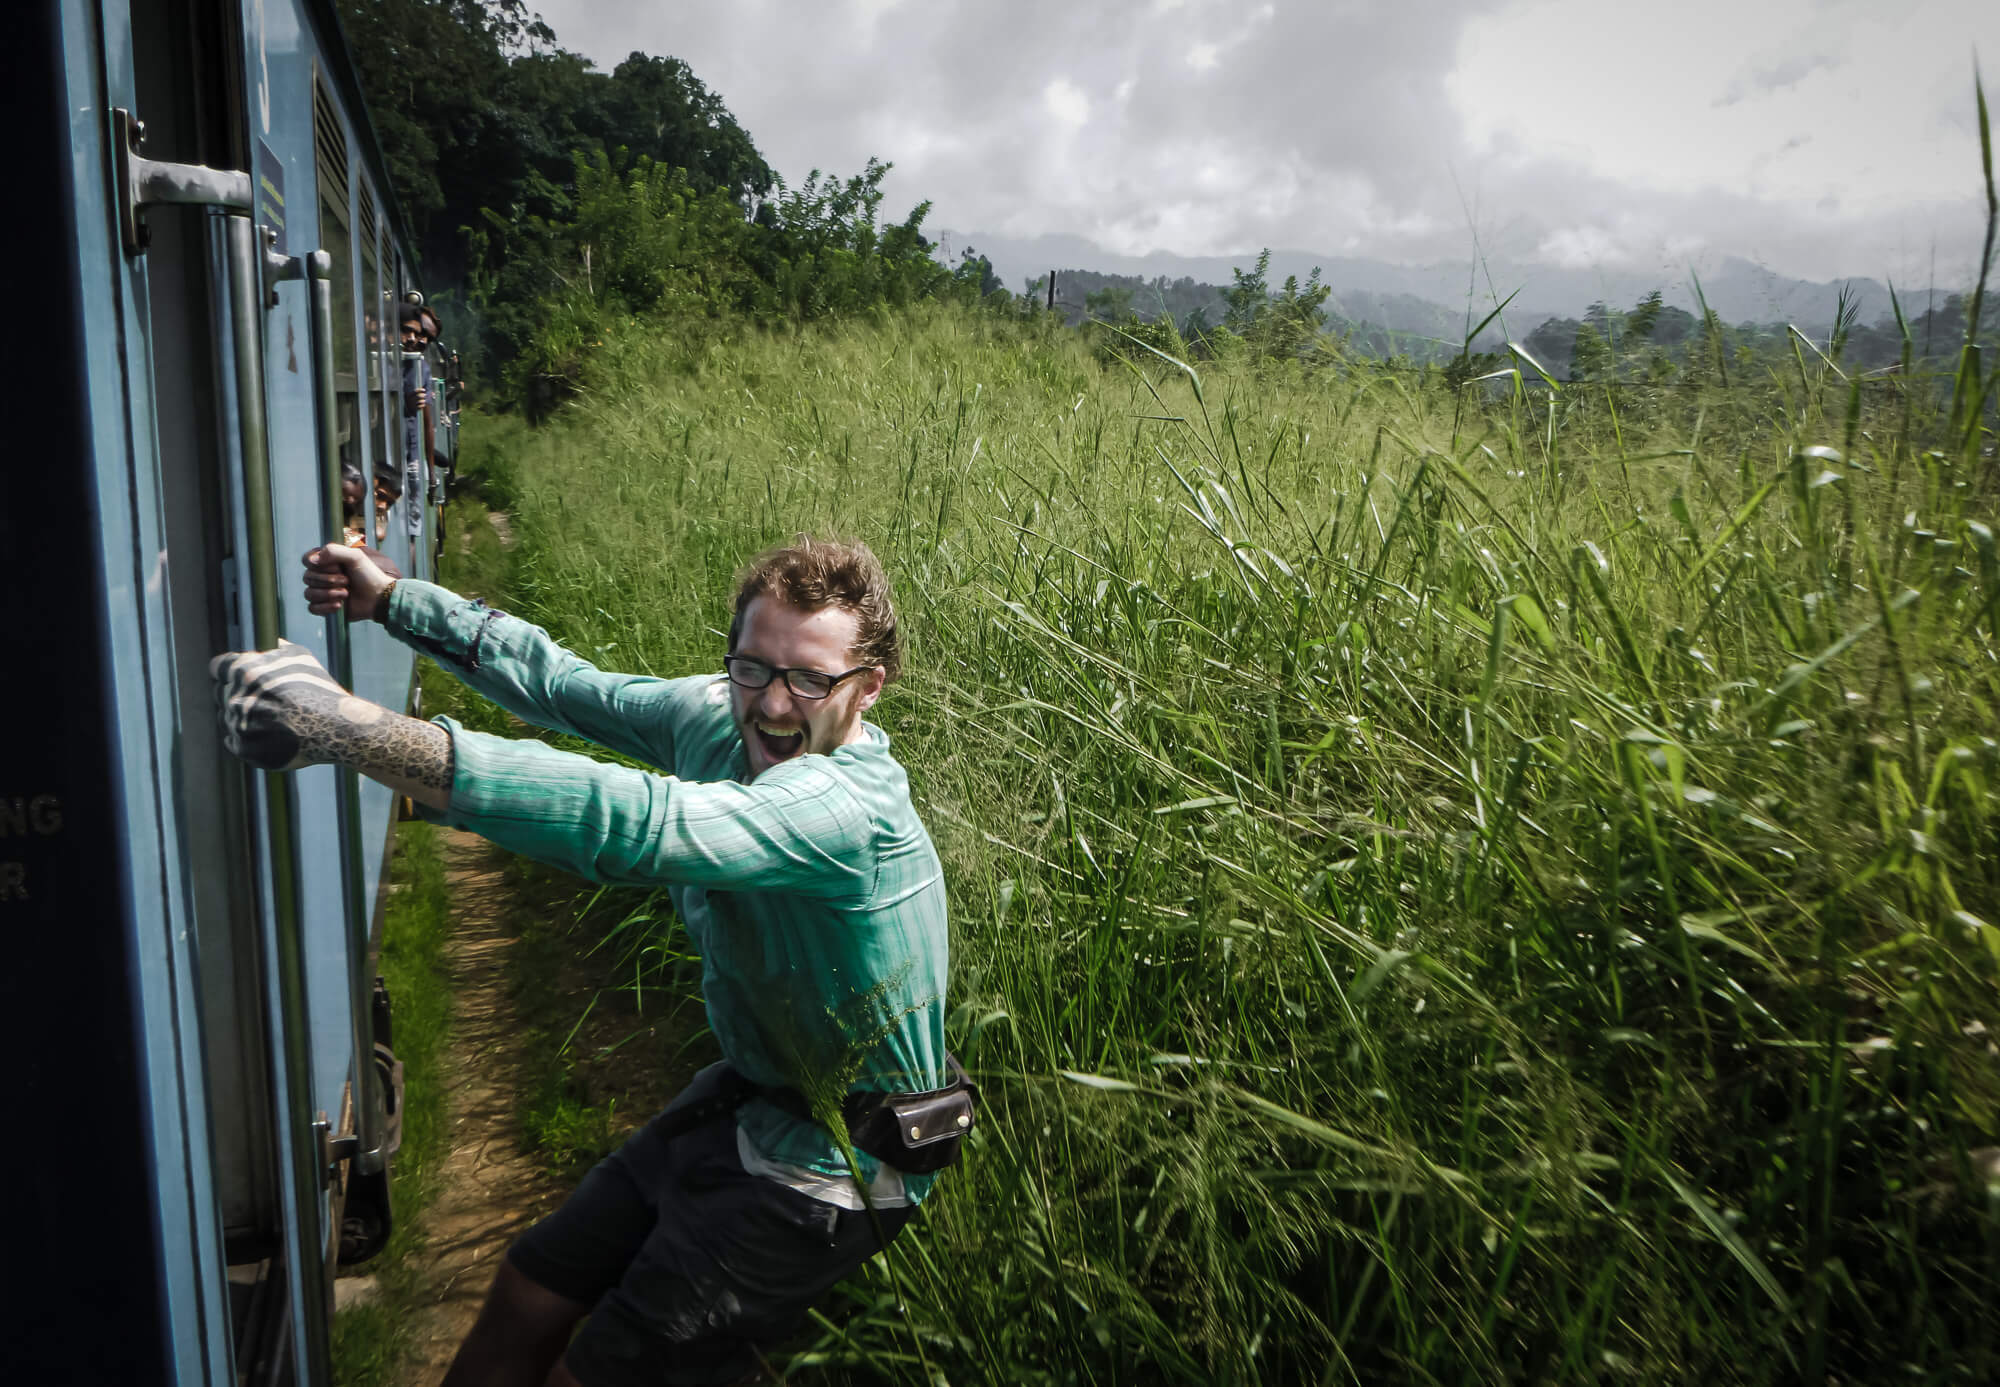 Hanging out the Kandy to Ella train - a must-do when visiting Sri Lanka for the first time